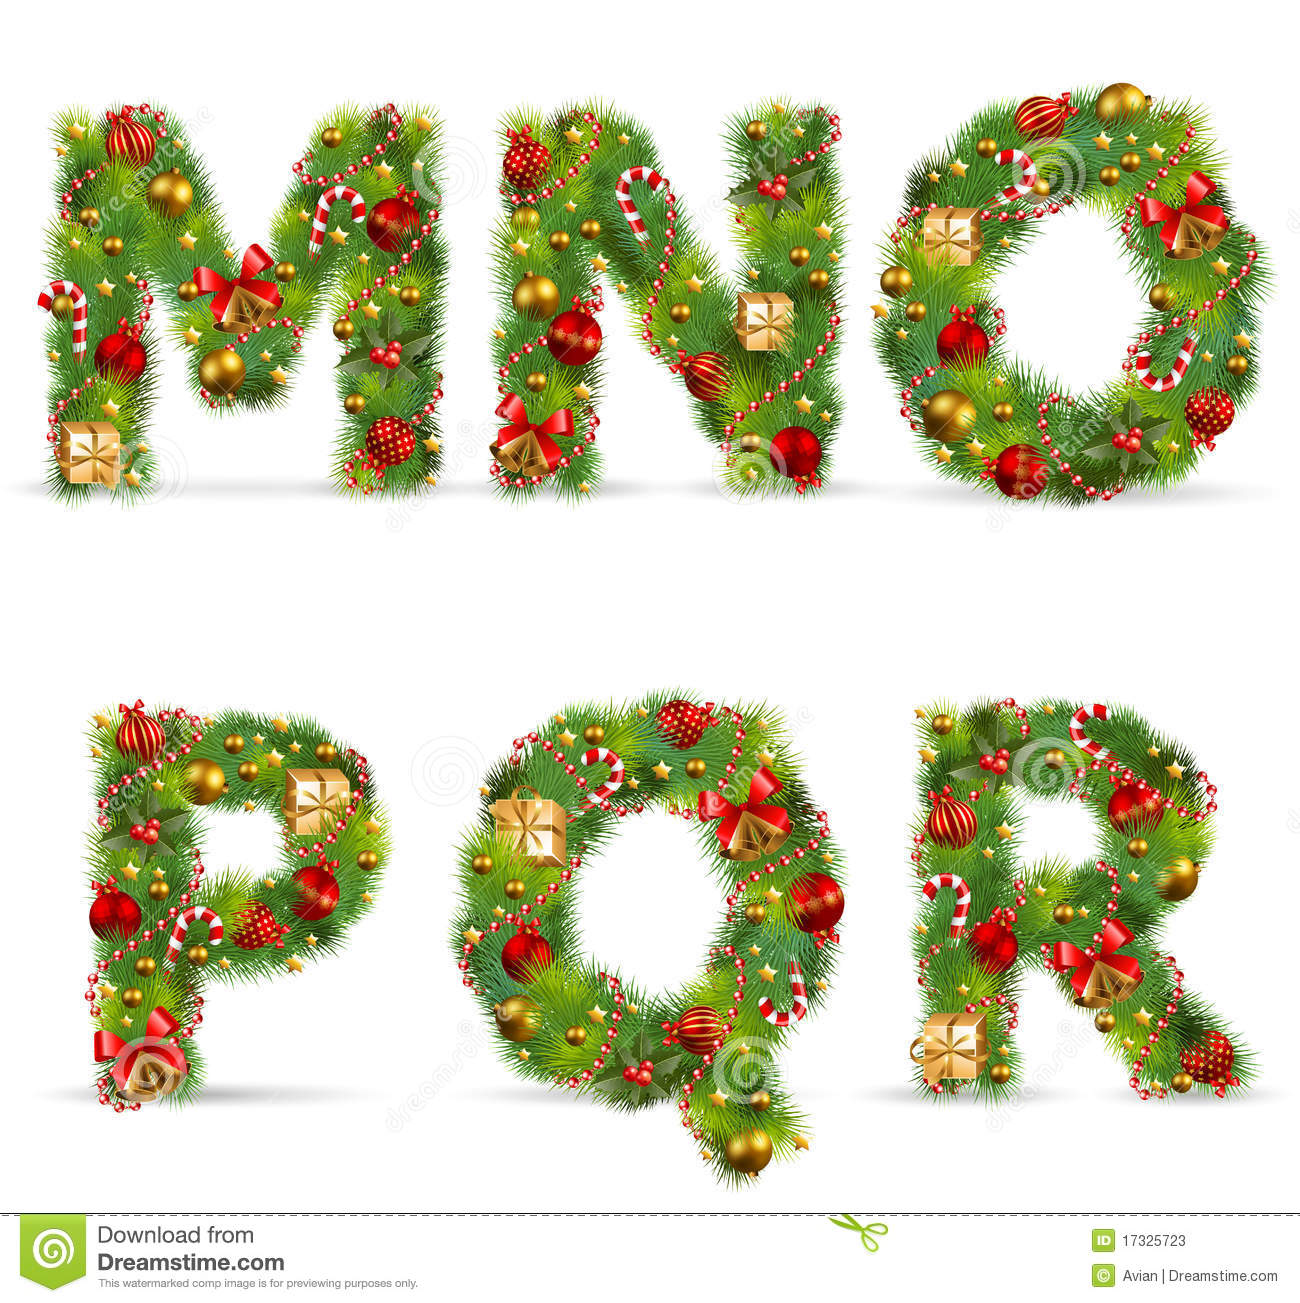 Mnopqr christmas tree font stock vector image 17325723 for Christmas tree letters